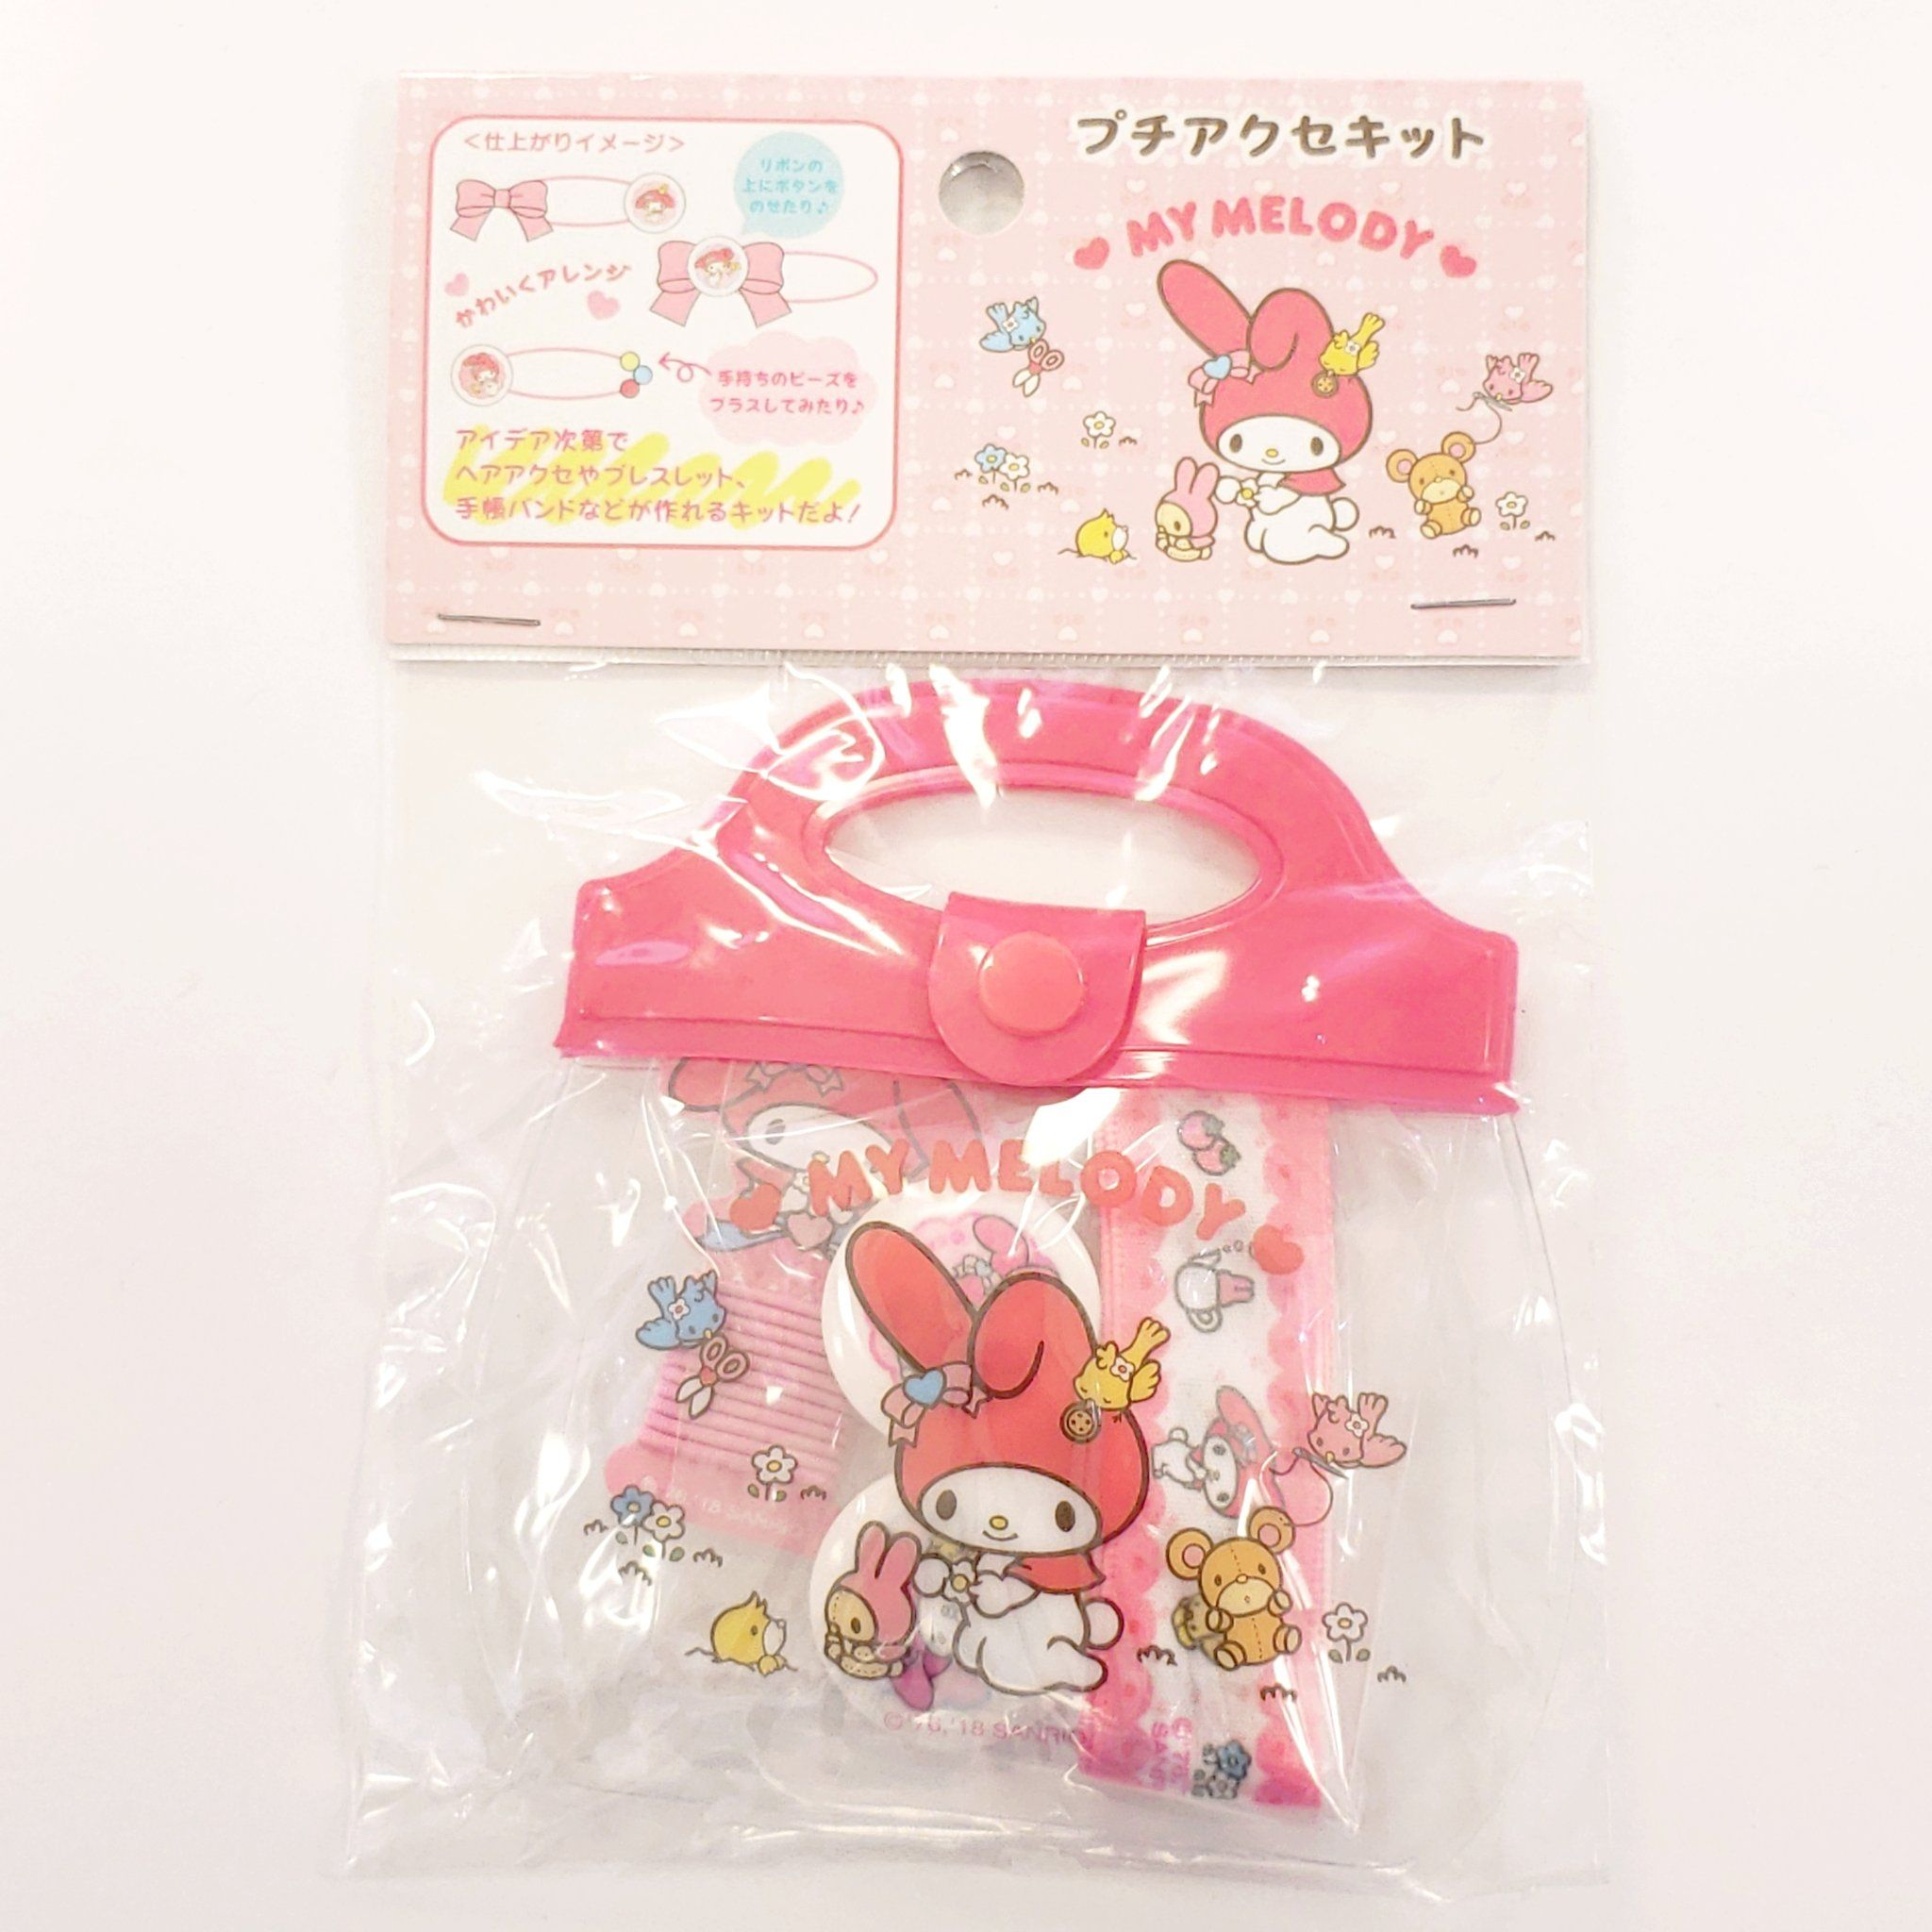 My Melody Hair Accessories Kit (With images) My melody